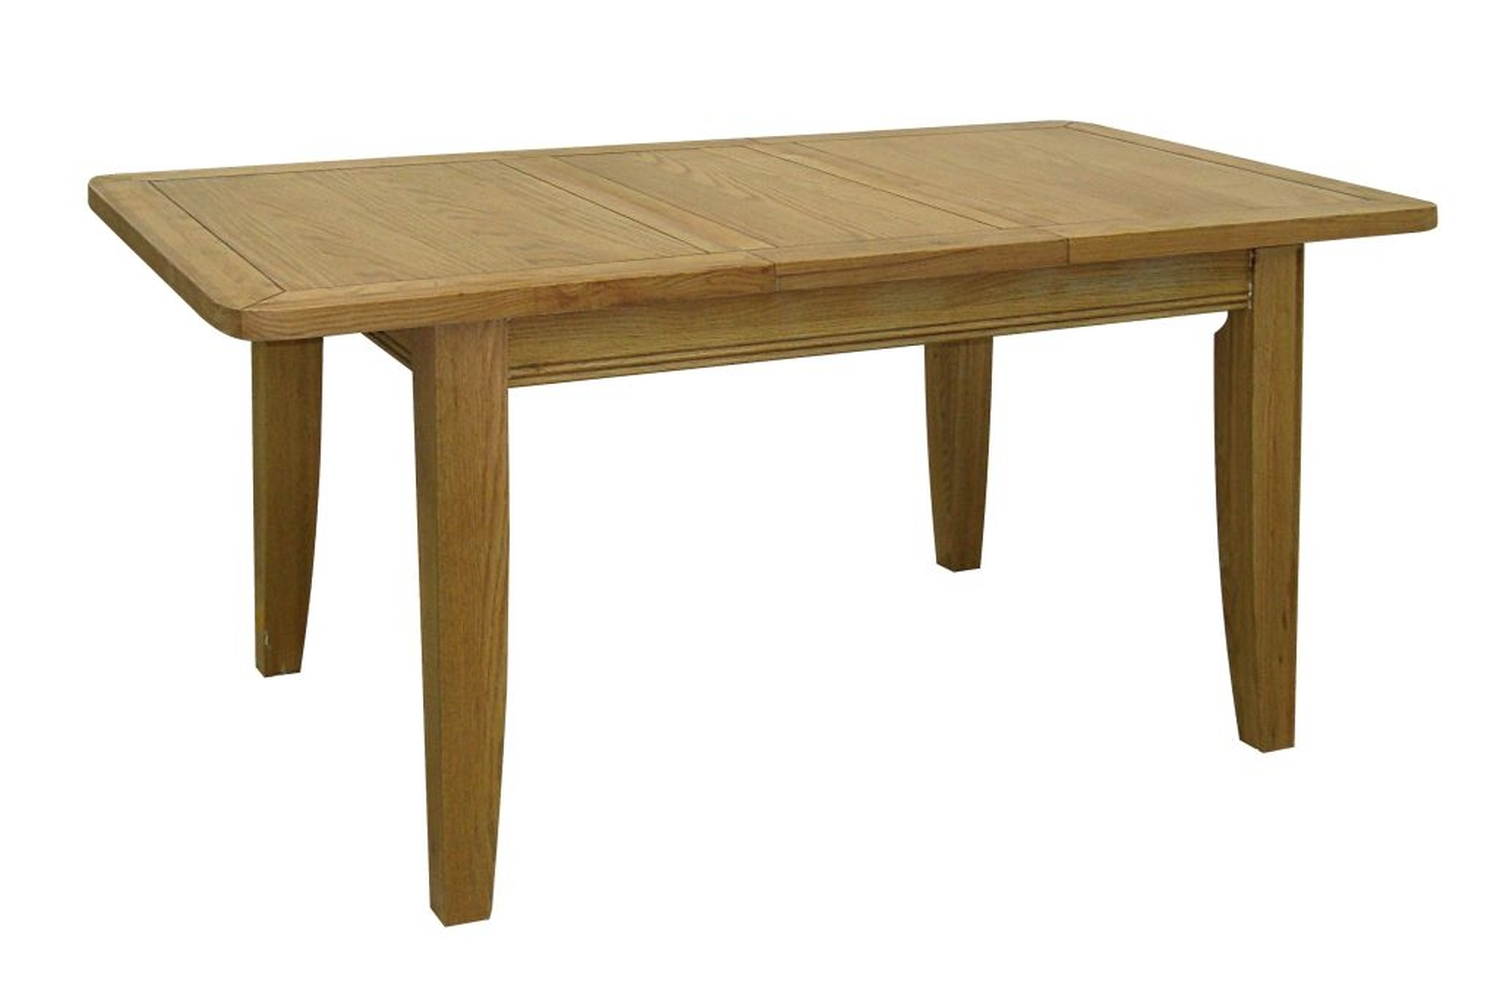 Linden solid oak dining room furniture extending dining for Oak dining room table chairs